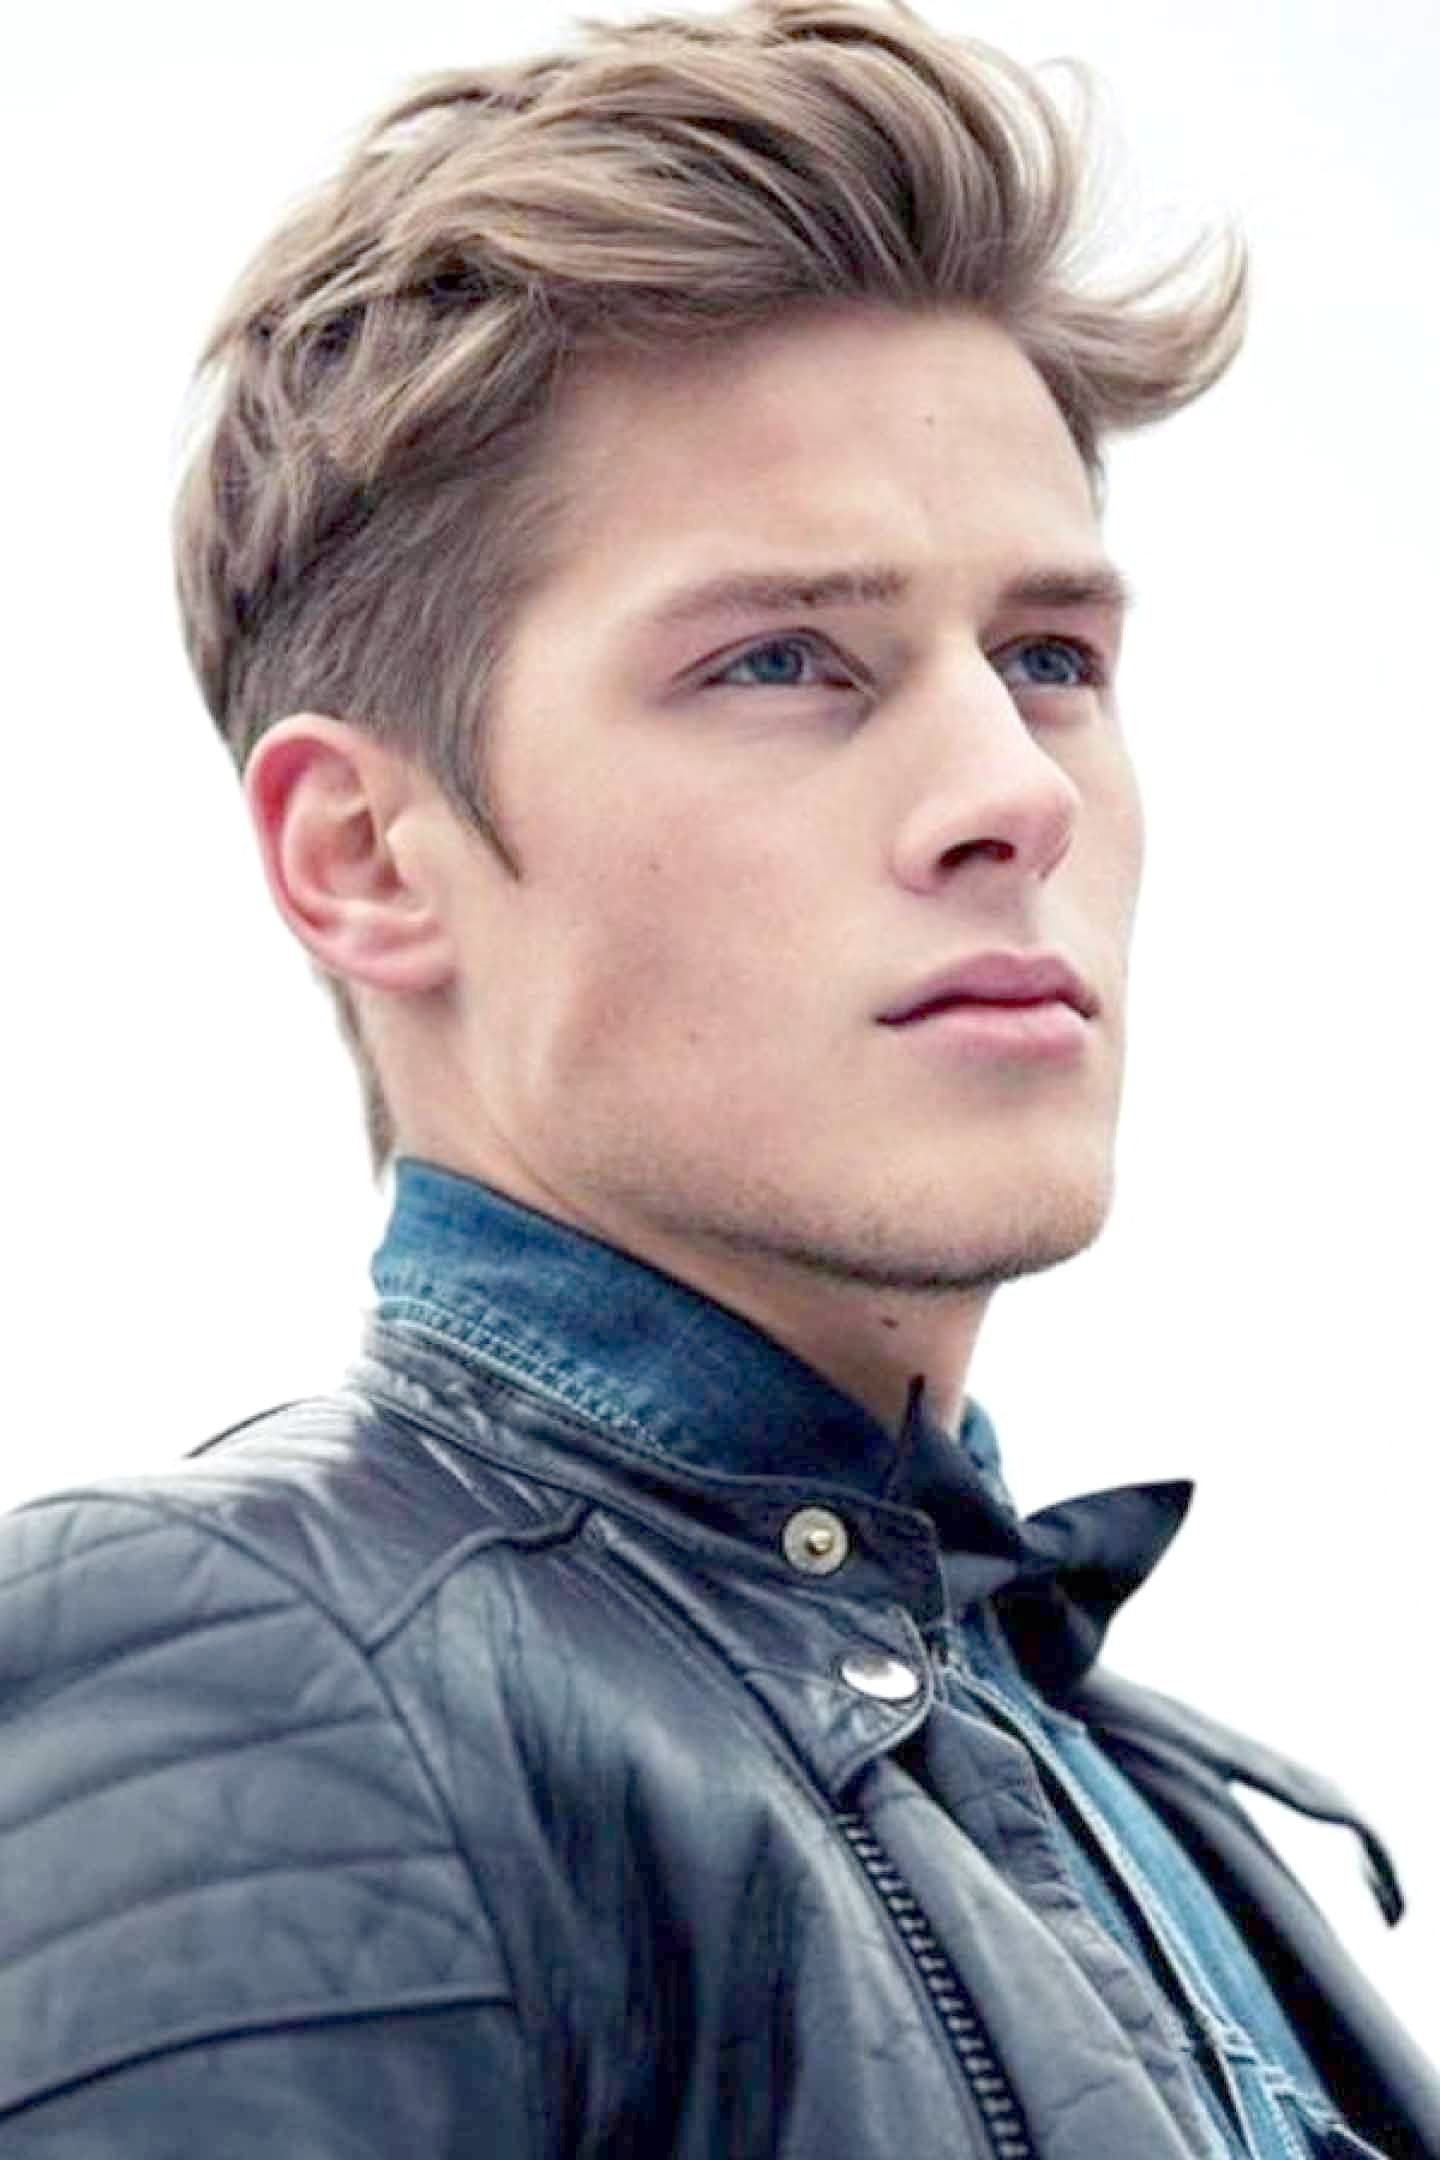 Straight up hairstyle boy pin by ryan on hair  pinterest  haircuts boy hair and hair style